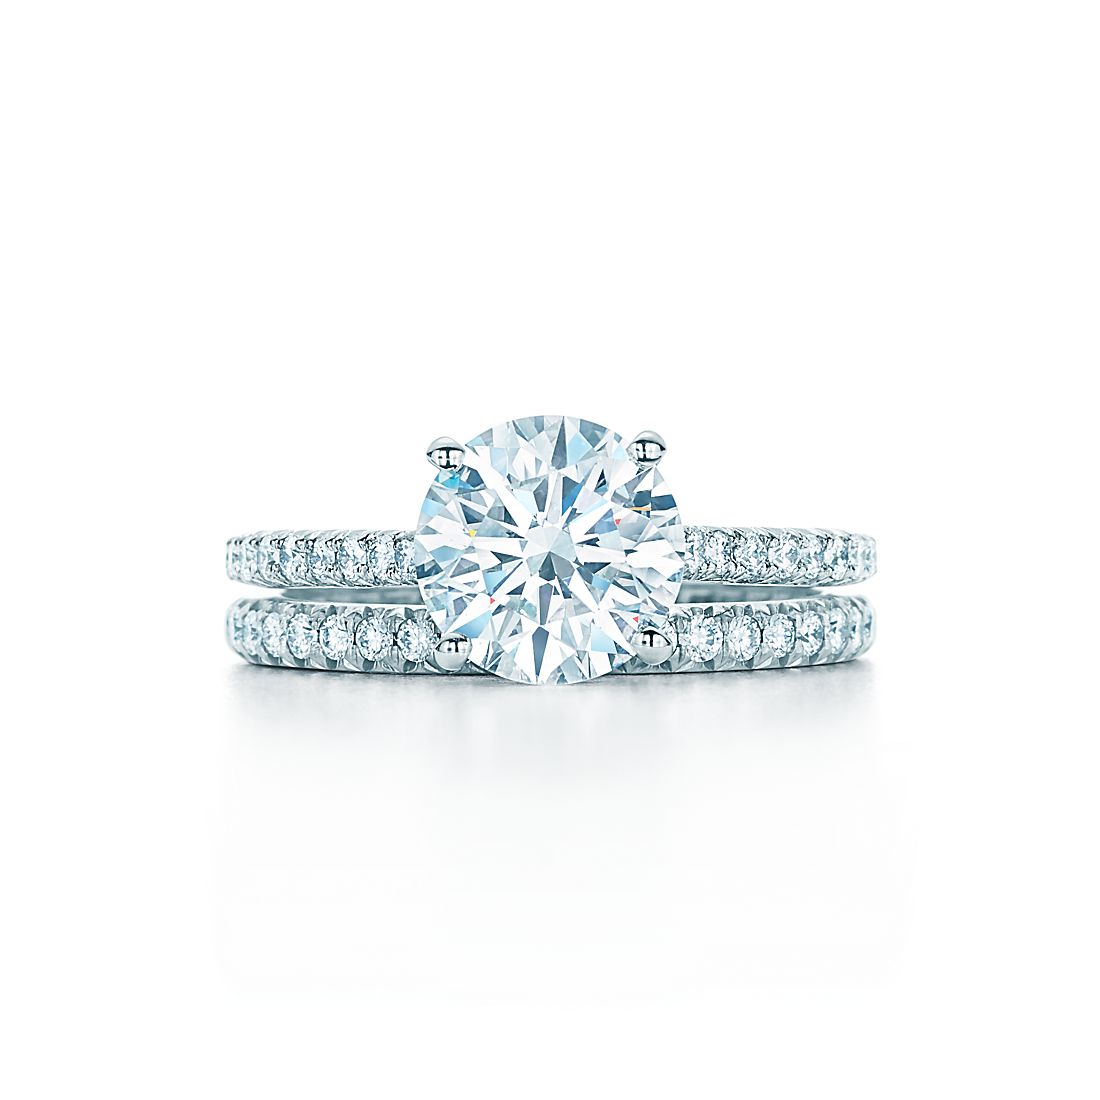 Tiffany Novo Wedding Ring